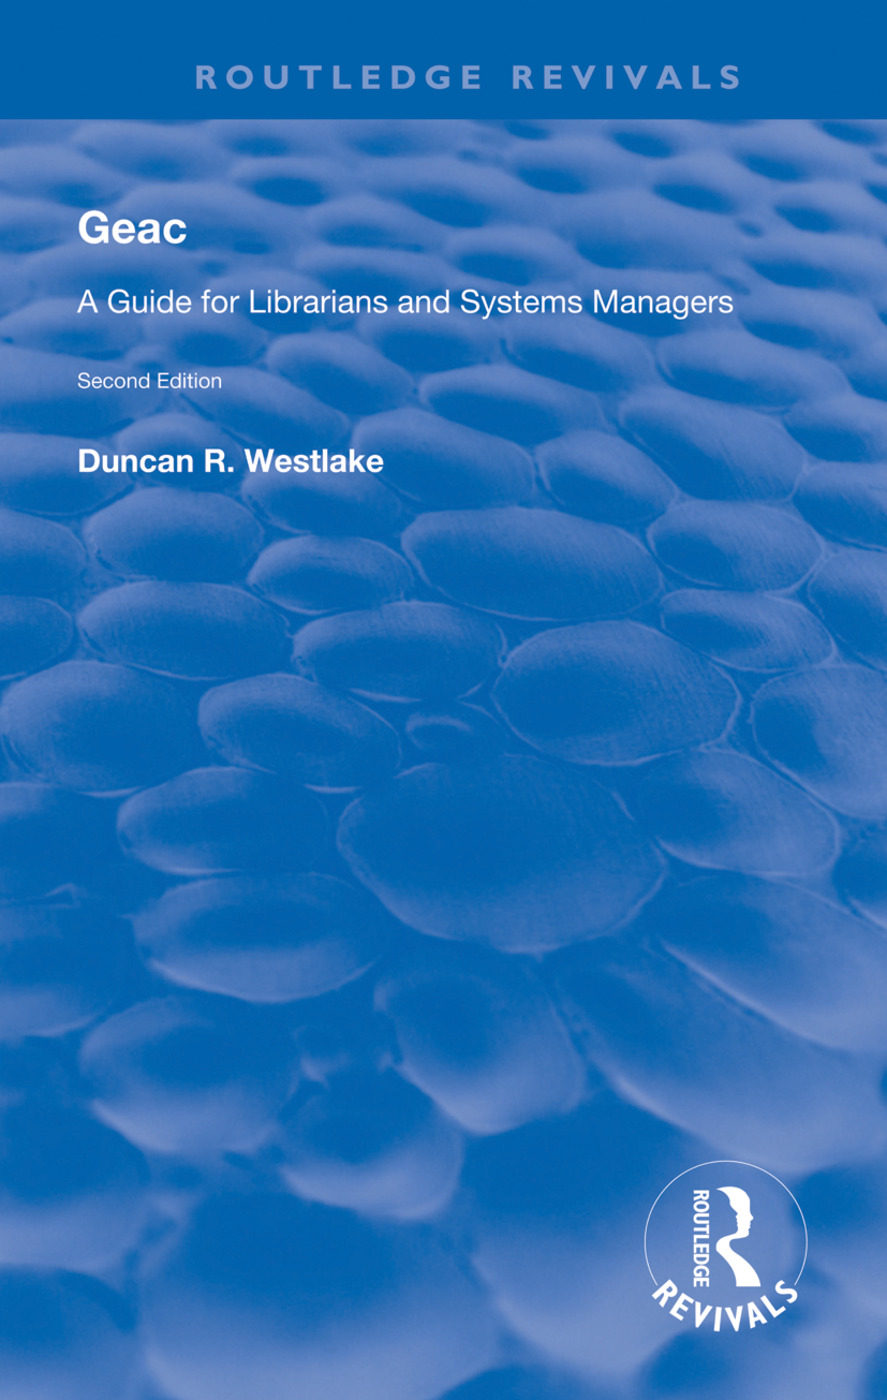 GEAC: A Guide for Librarians and Systems Managers book cover